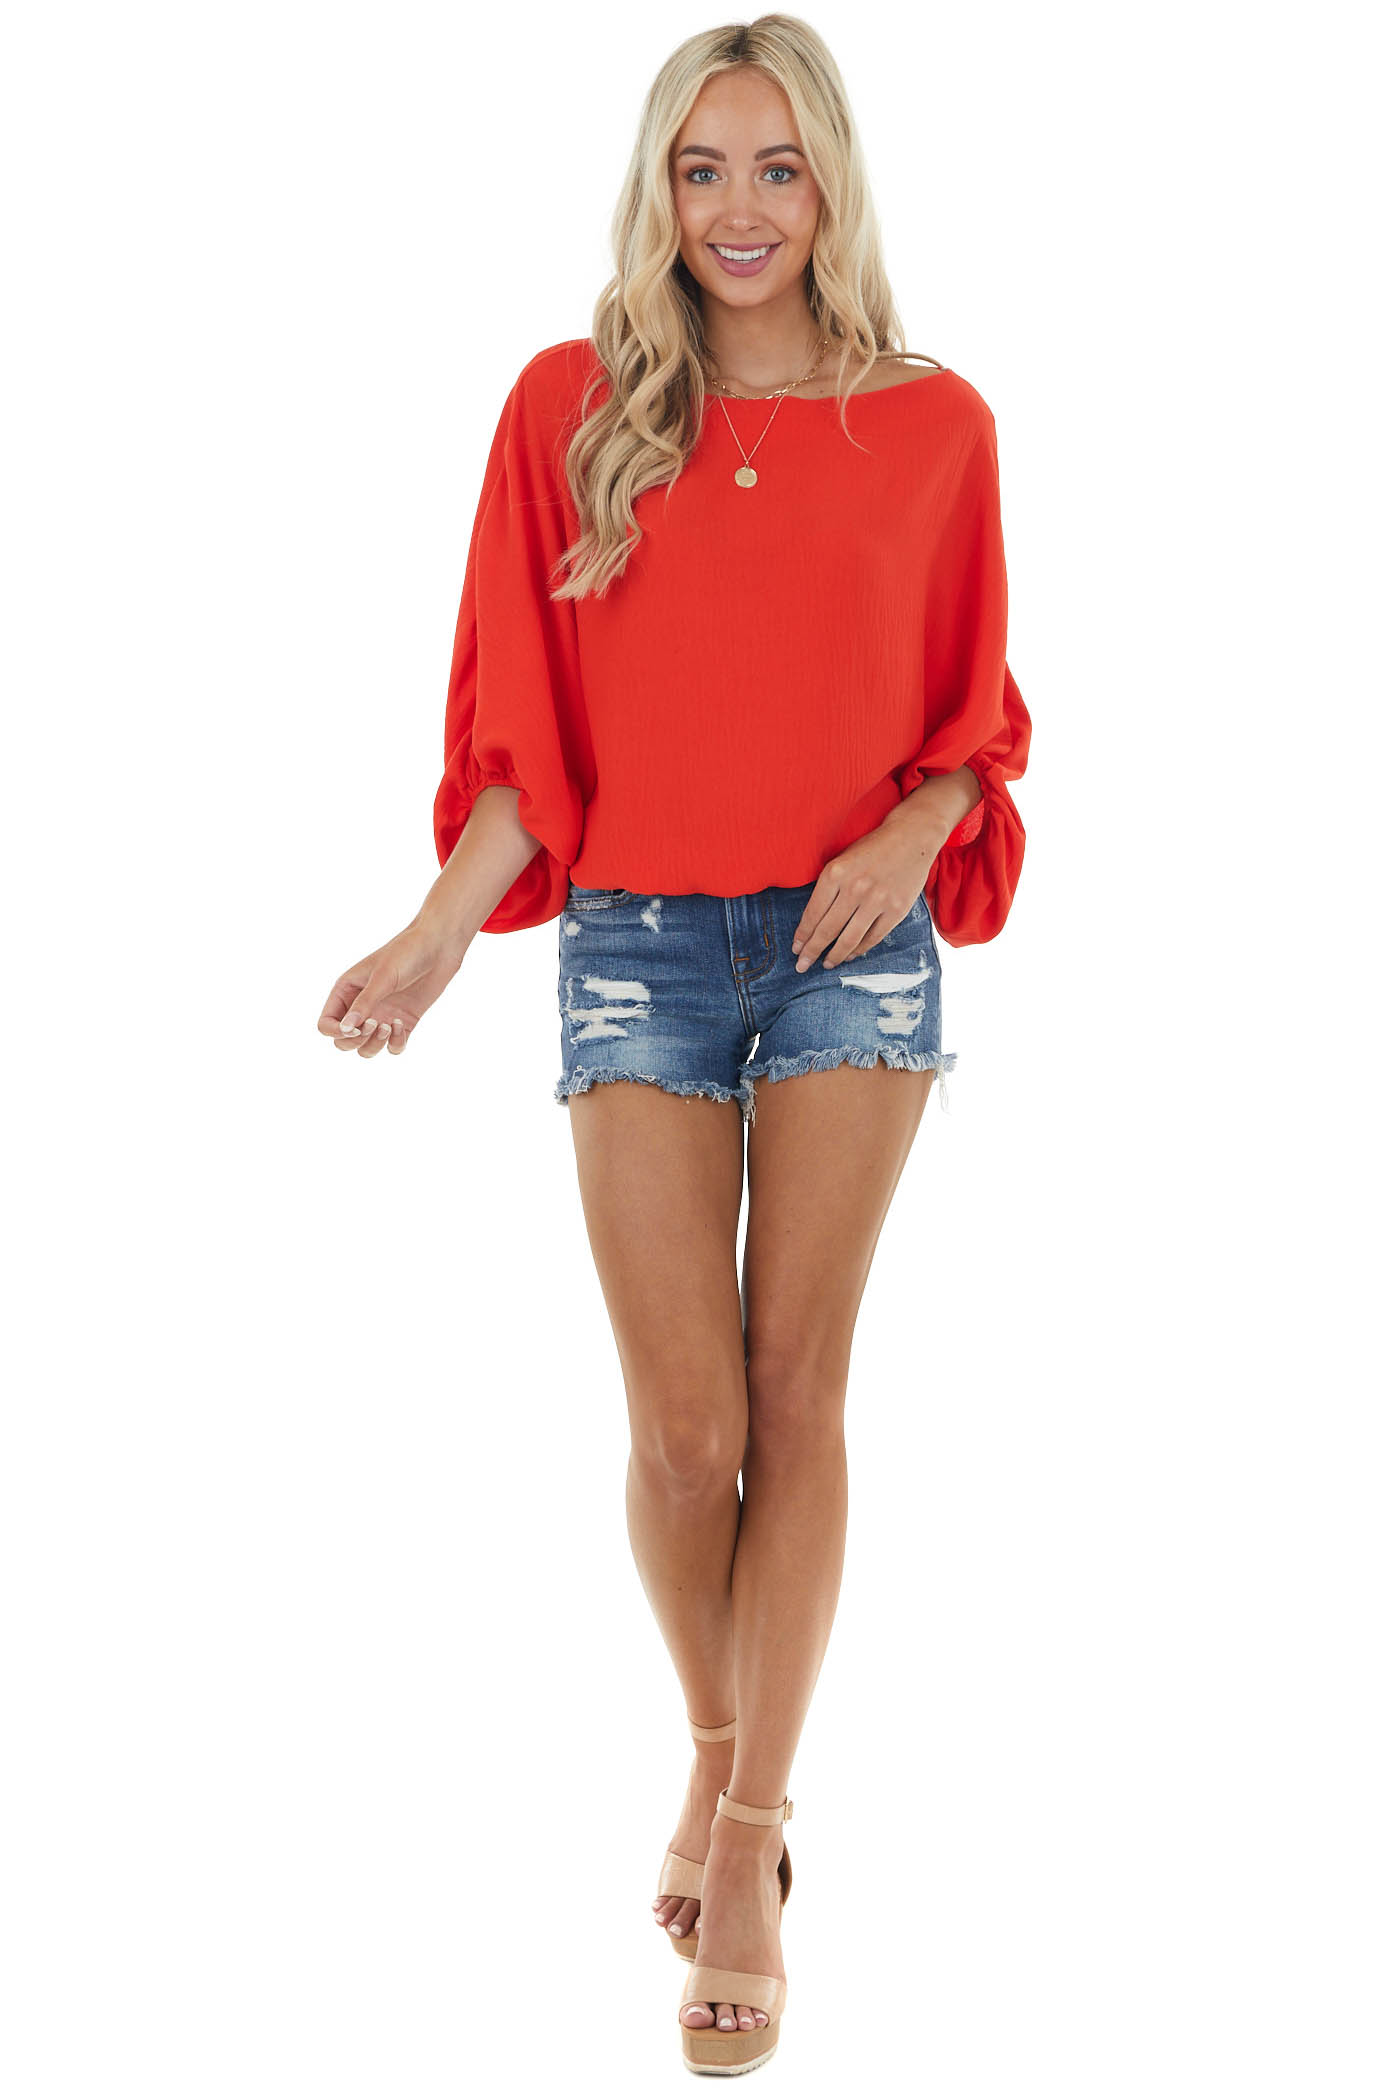 Scarlet Boat Neckline Blouse with Dolman Bubble Sleeves